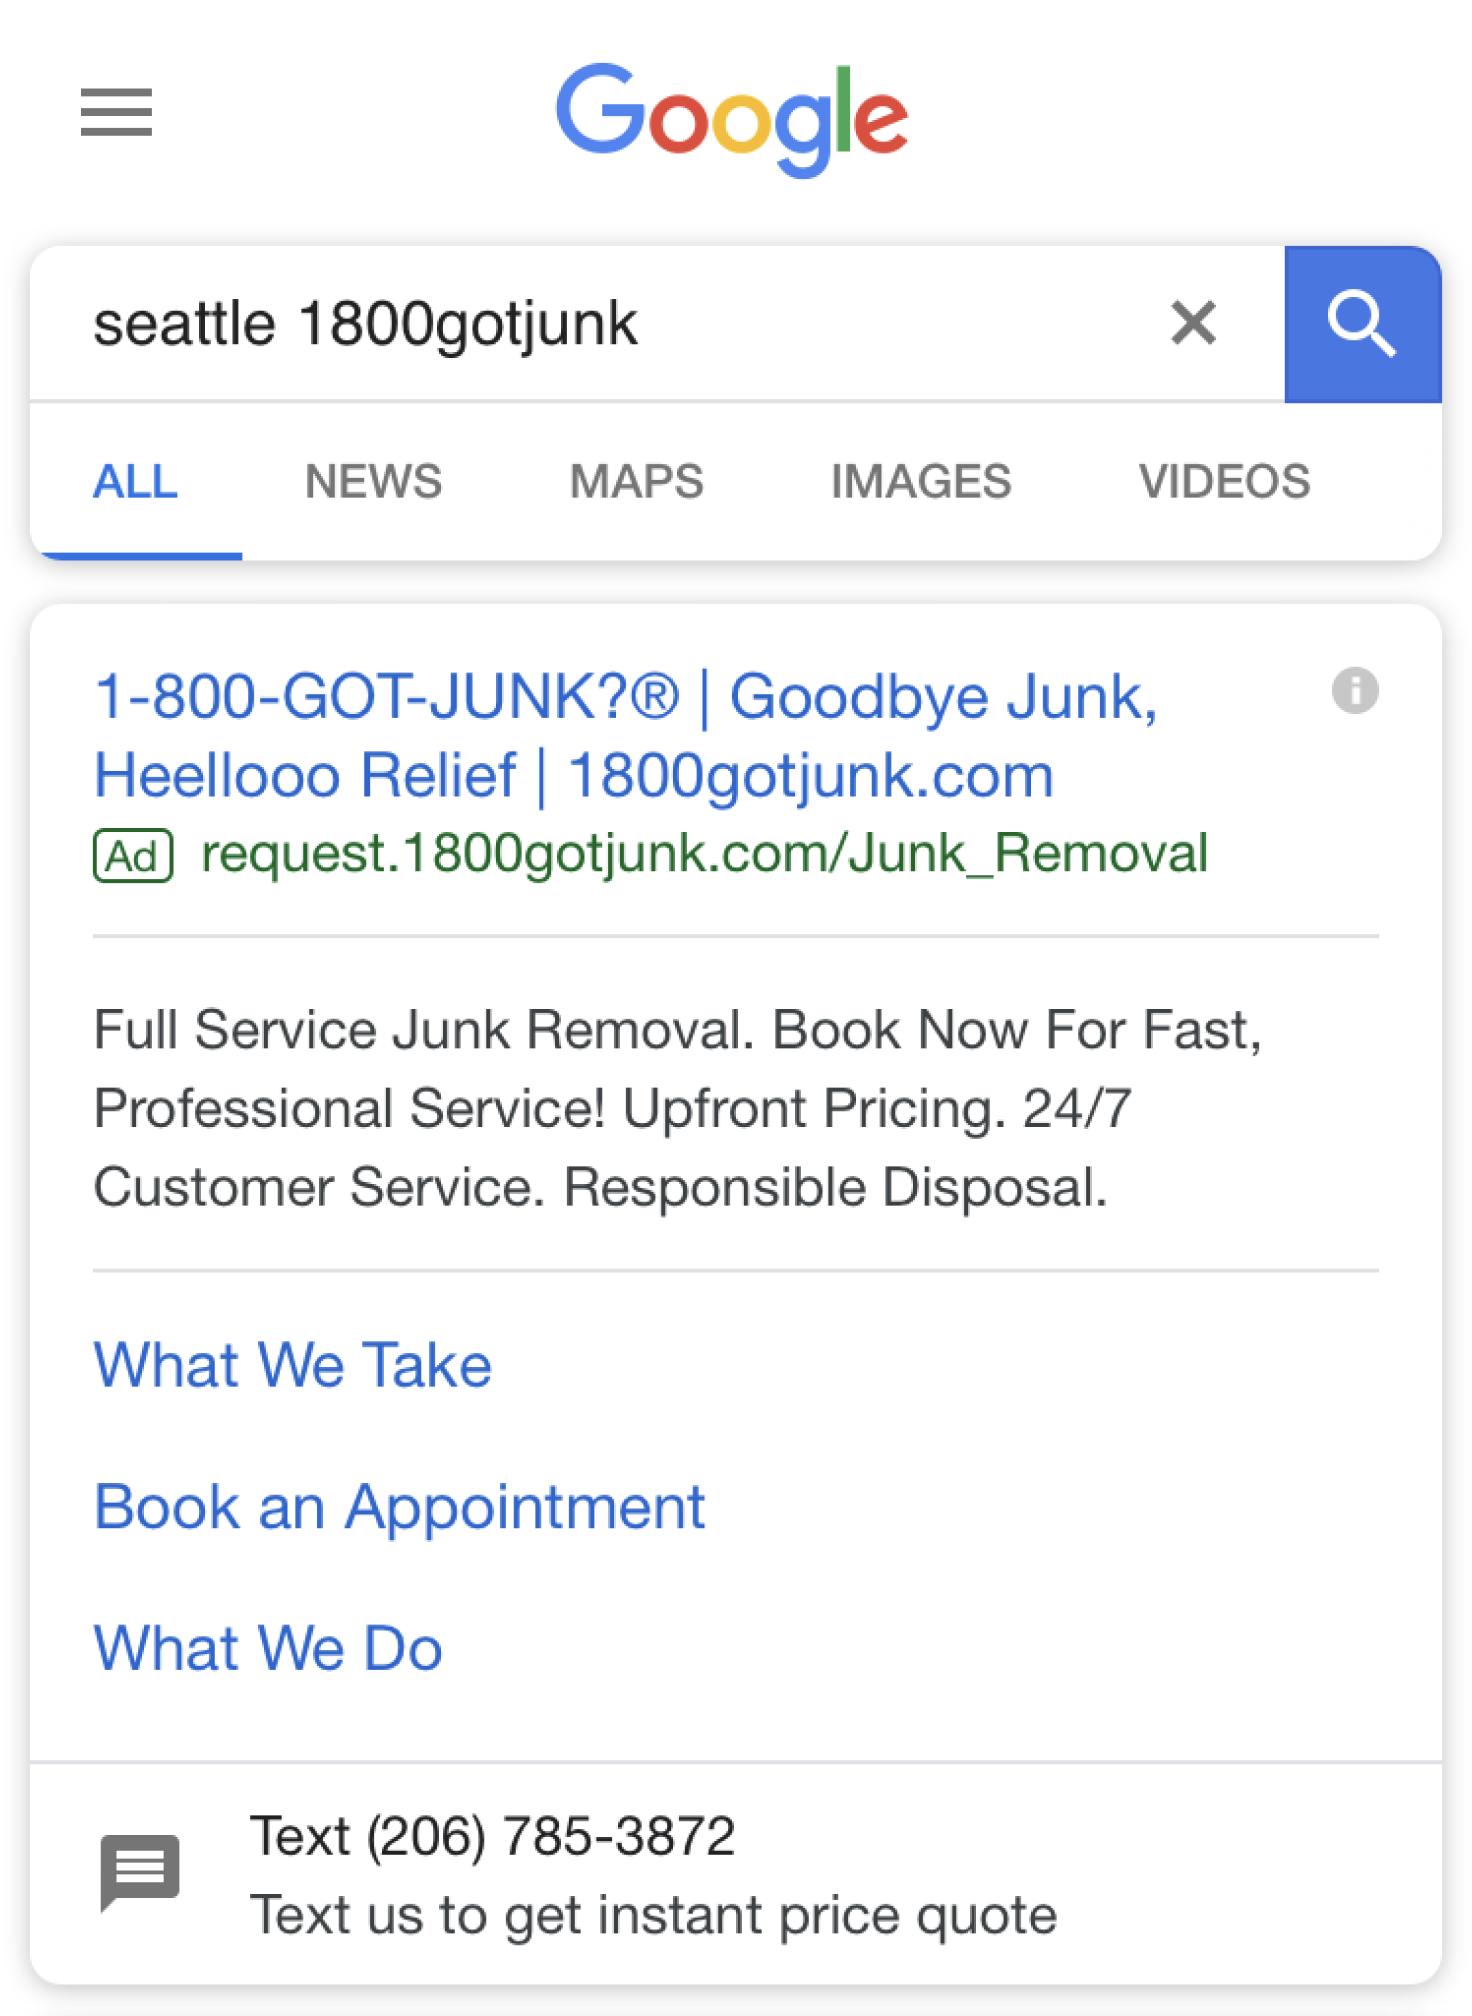 Texting number displayed in a Google advertisement